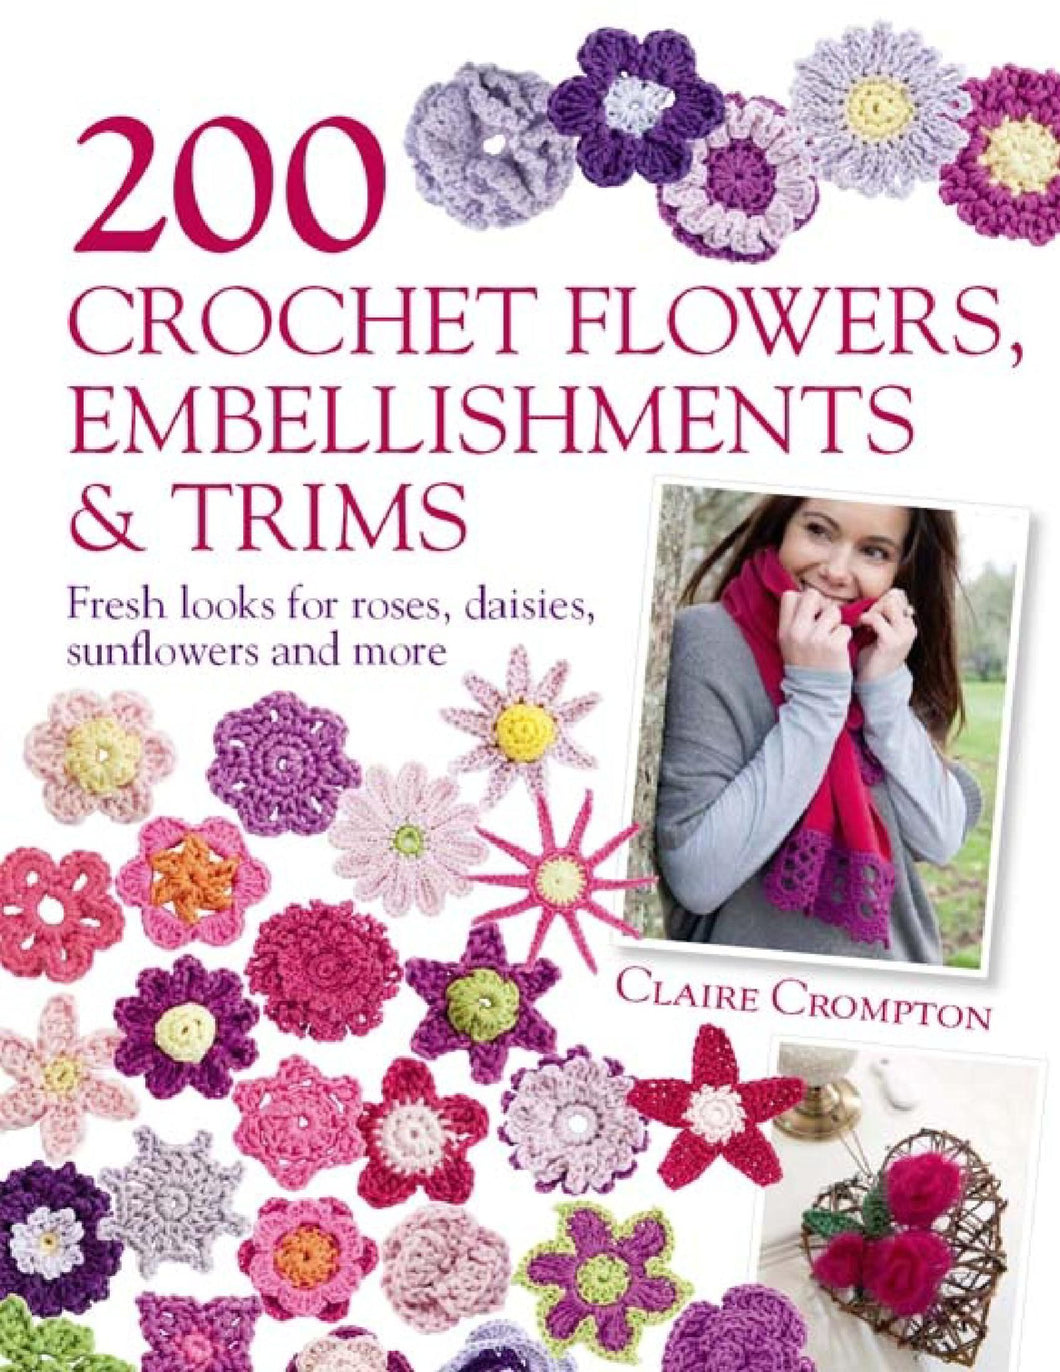 200 Crochet Flowers, Embellishments and Trims - eBook, PDF (Fast instant delivery)